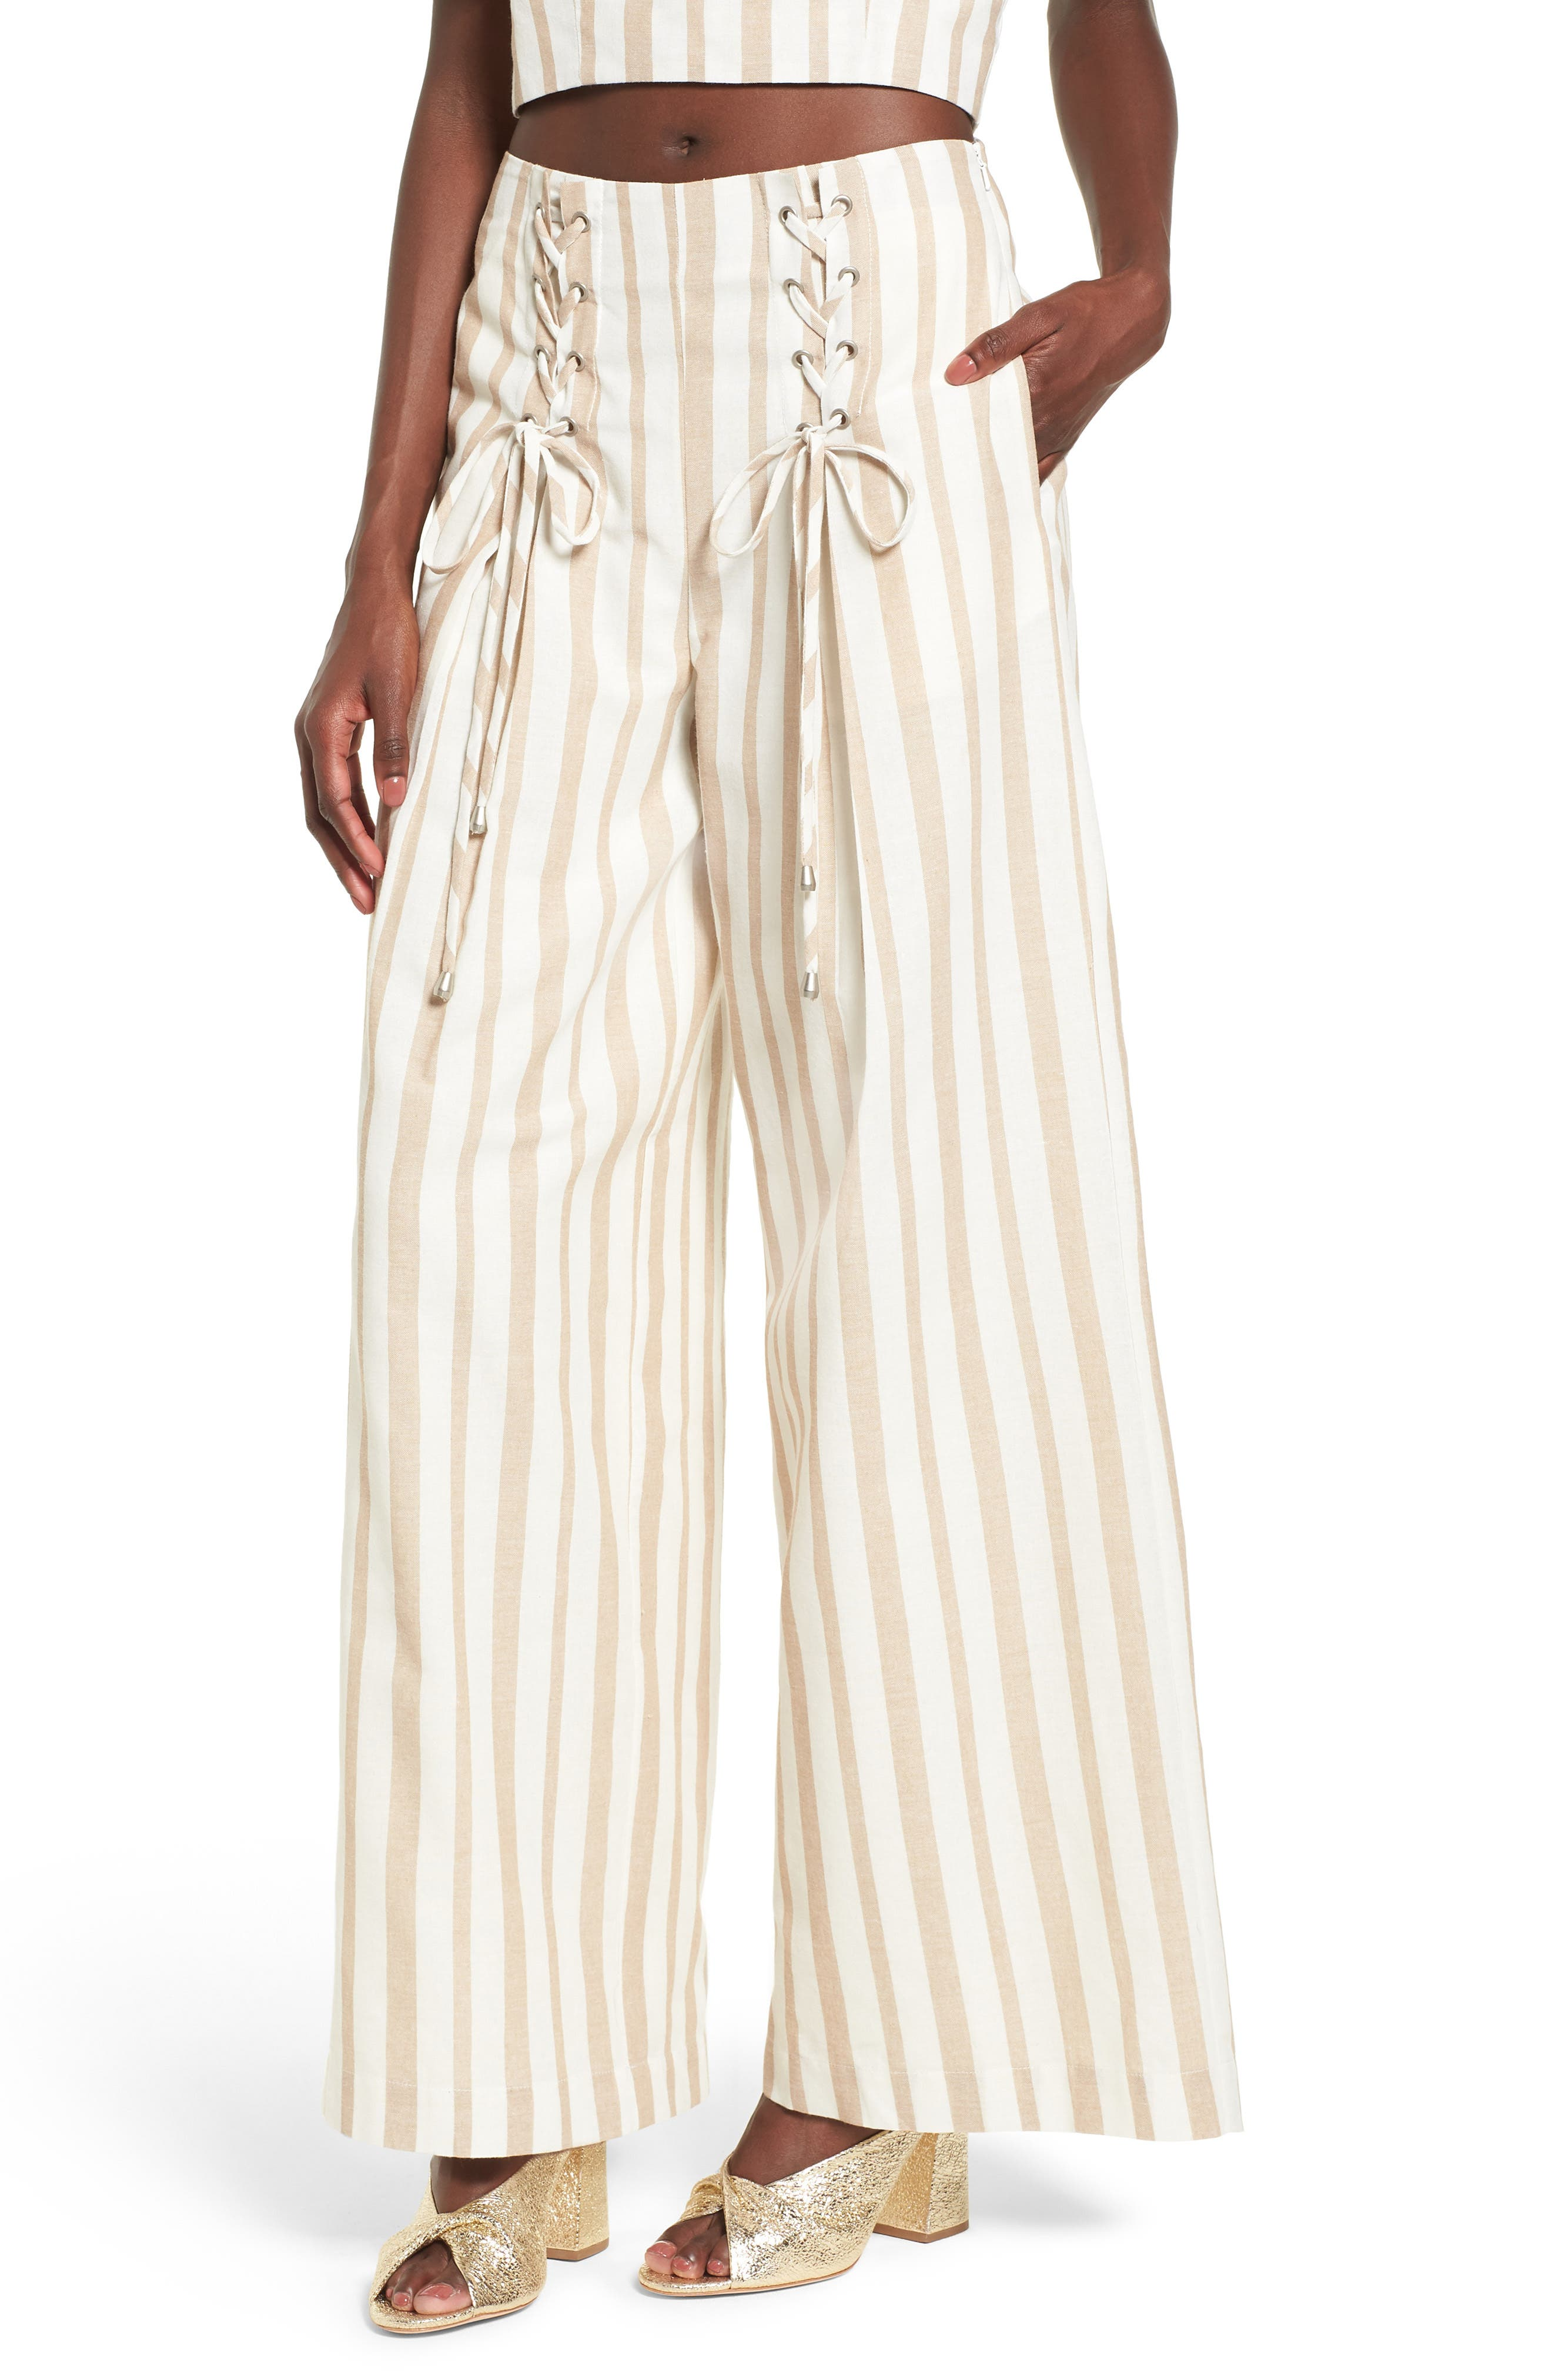 Chriselle x J.O.A. Lace-Up High Waist Wide Leg Pants,                             Main thumbnail 1, color,                             Sand Stripe